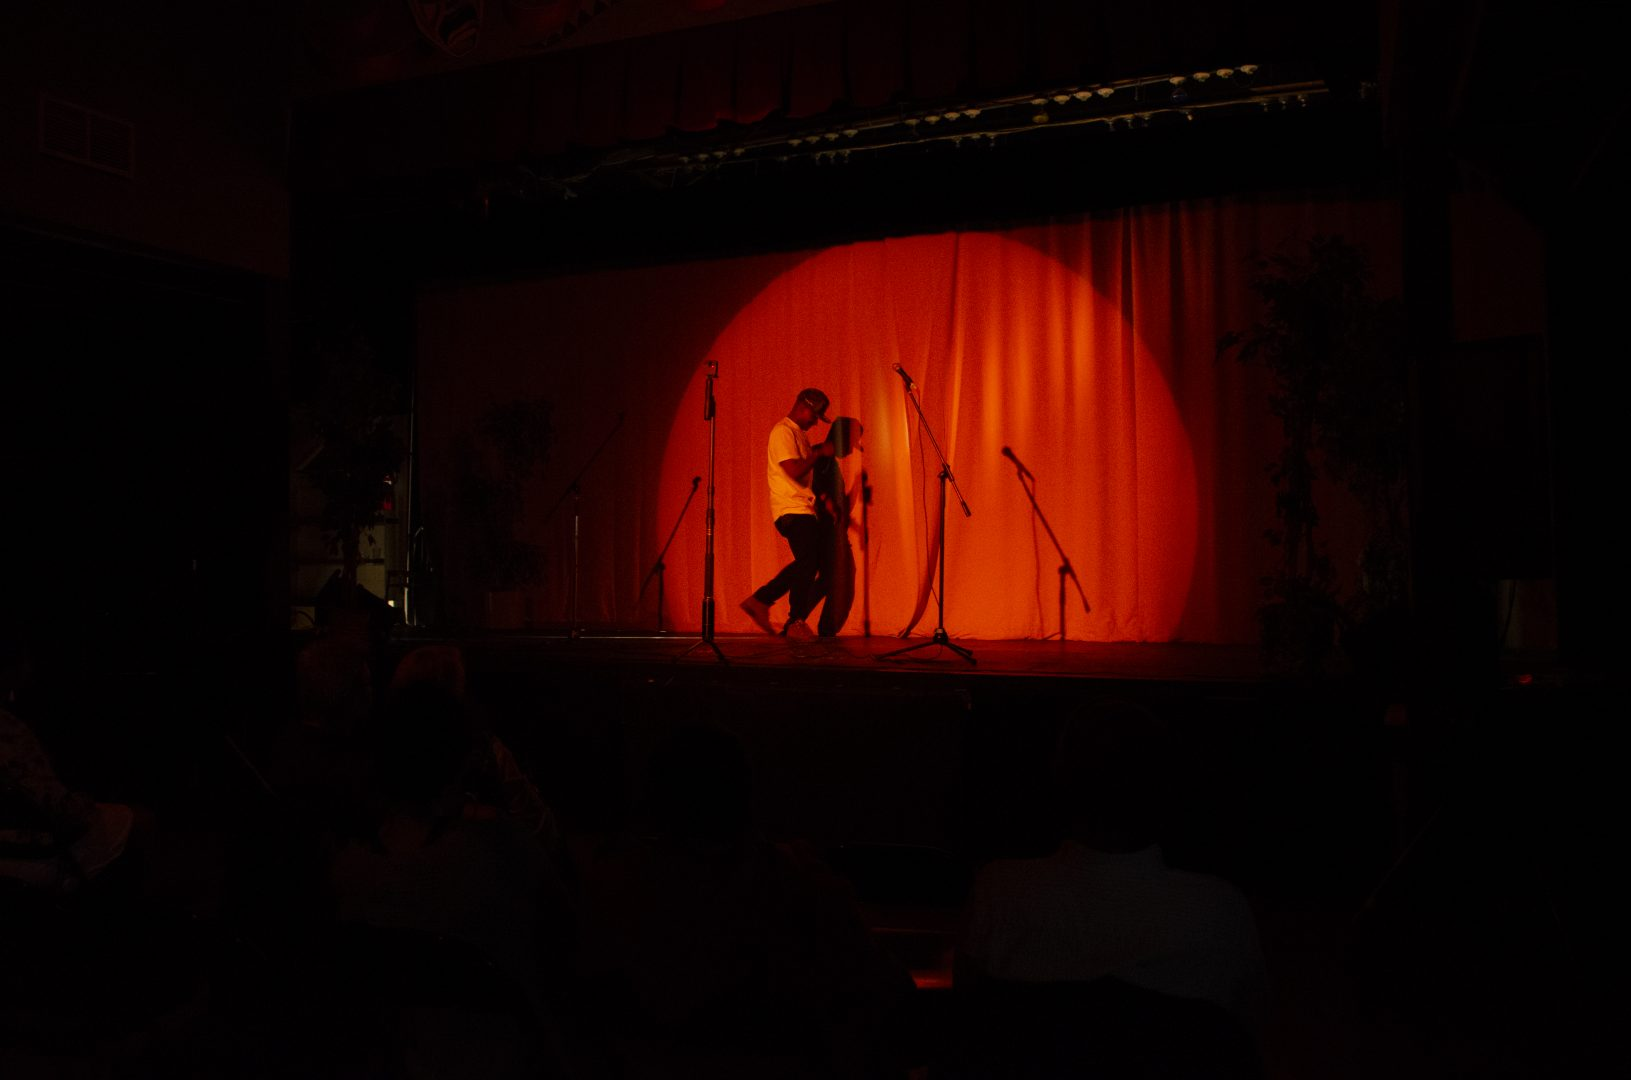 Steve Harmony performing on stage, in motion, with a bright light in the shape of a circle, revealing the red curtain behind. There is darkness surrounding everywhere else.